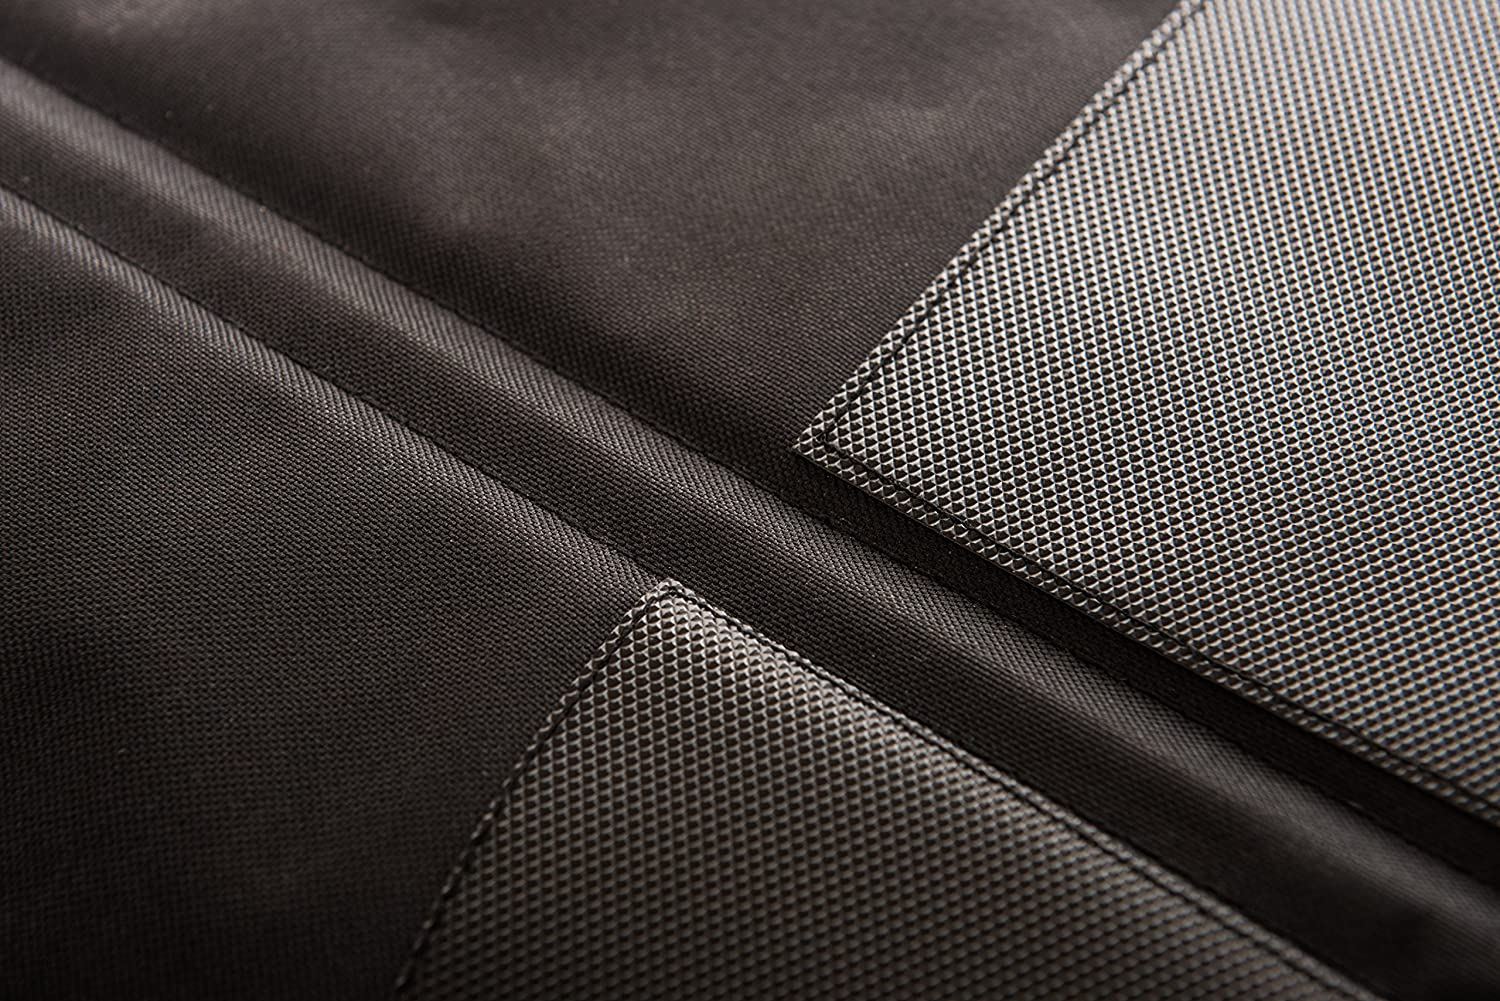 Zohzo Car Seat Protector - Child & Infant Car Seat Protector | Cushions Your Carseat to Protect Your Car | Secures Top Straps | Storage Pockets ZOHZO-CAR-SEAT-PROTECTOR